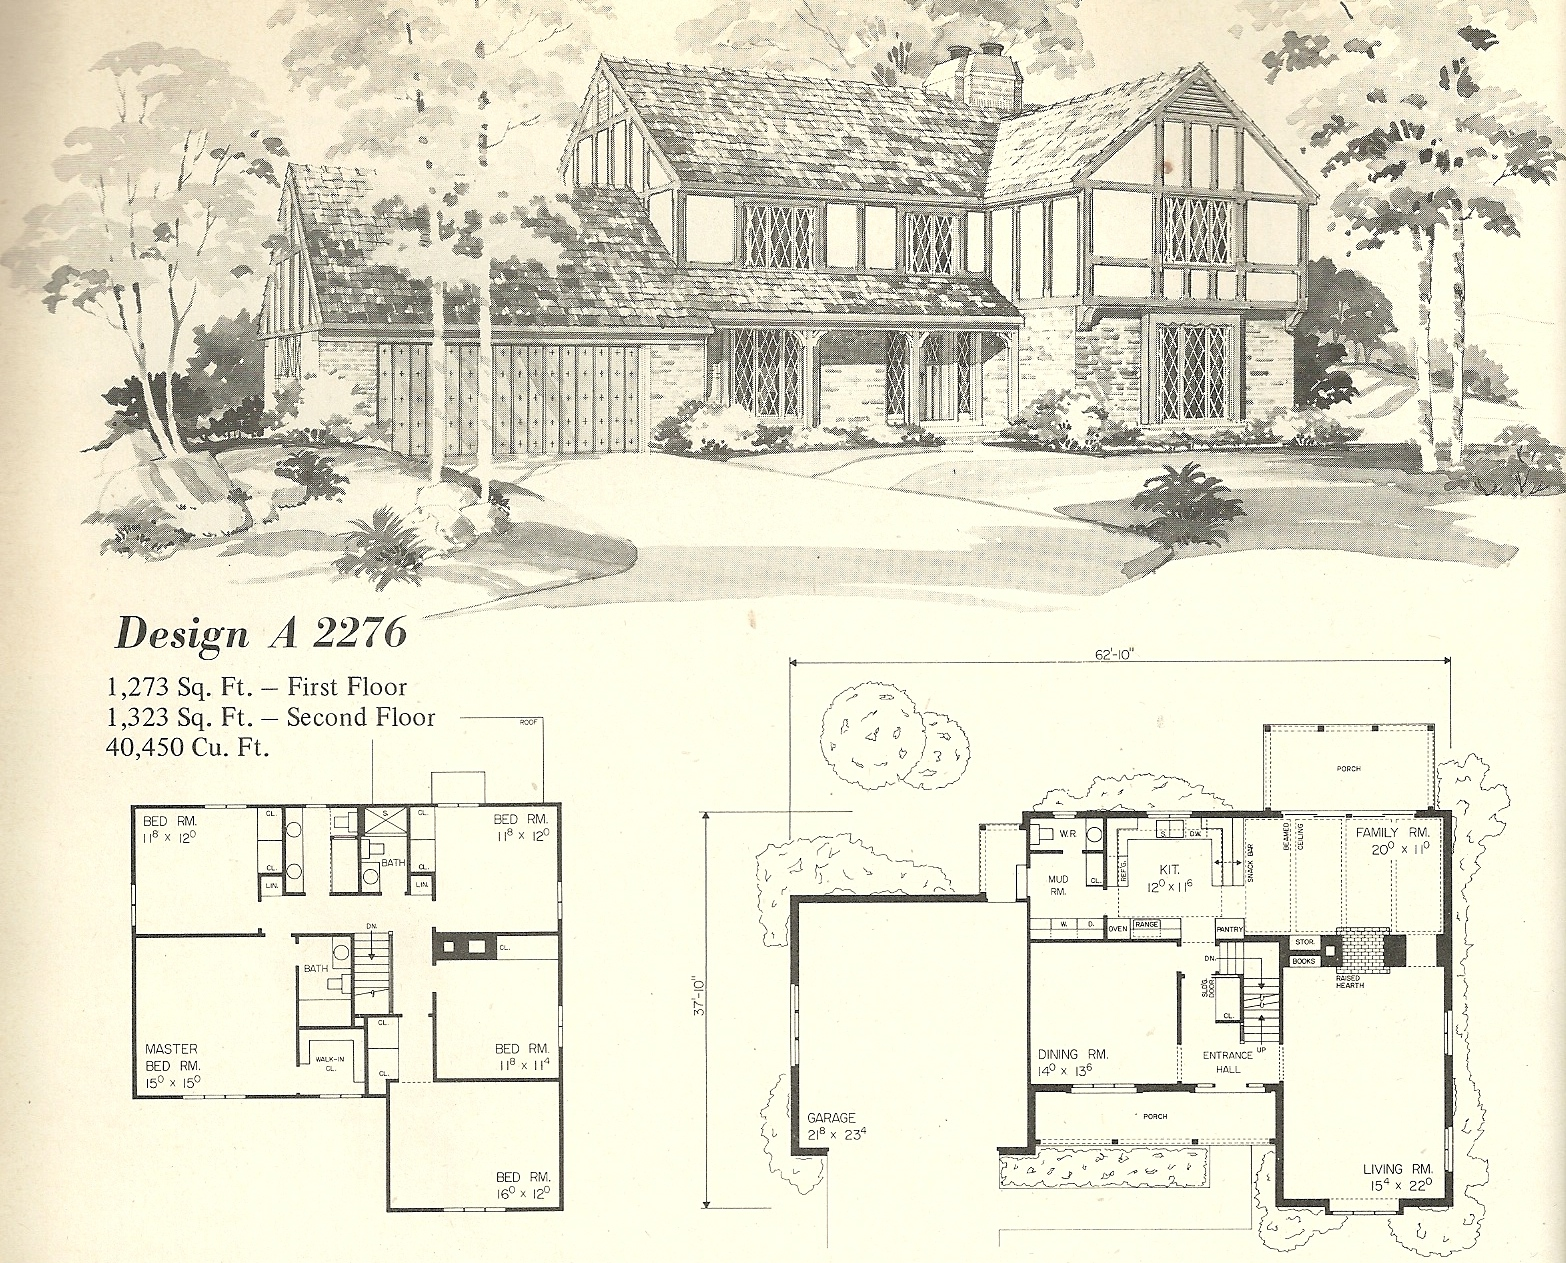 Vintage house plans 2276 antique alter ego for Vintage floor plans